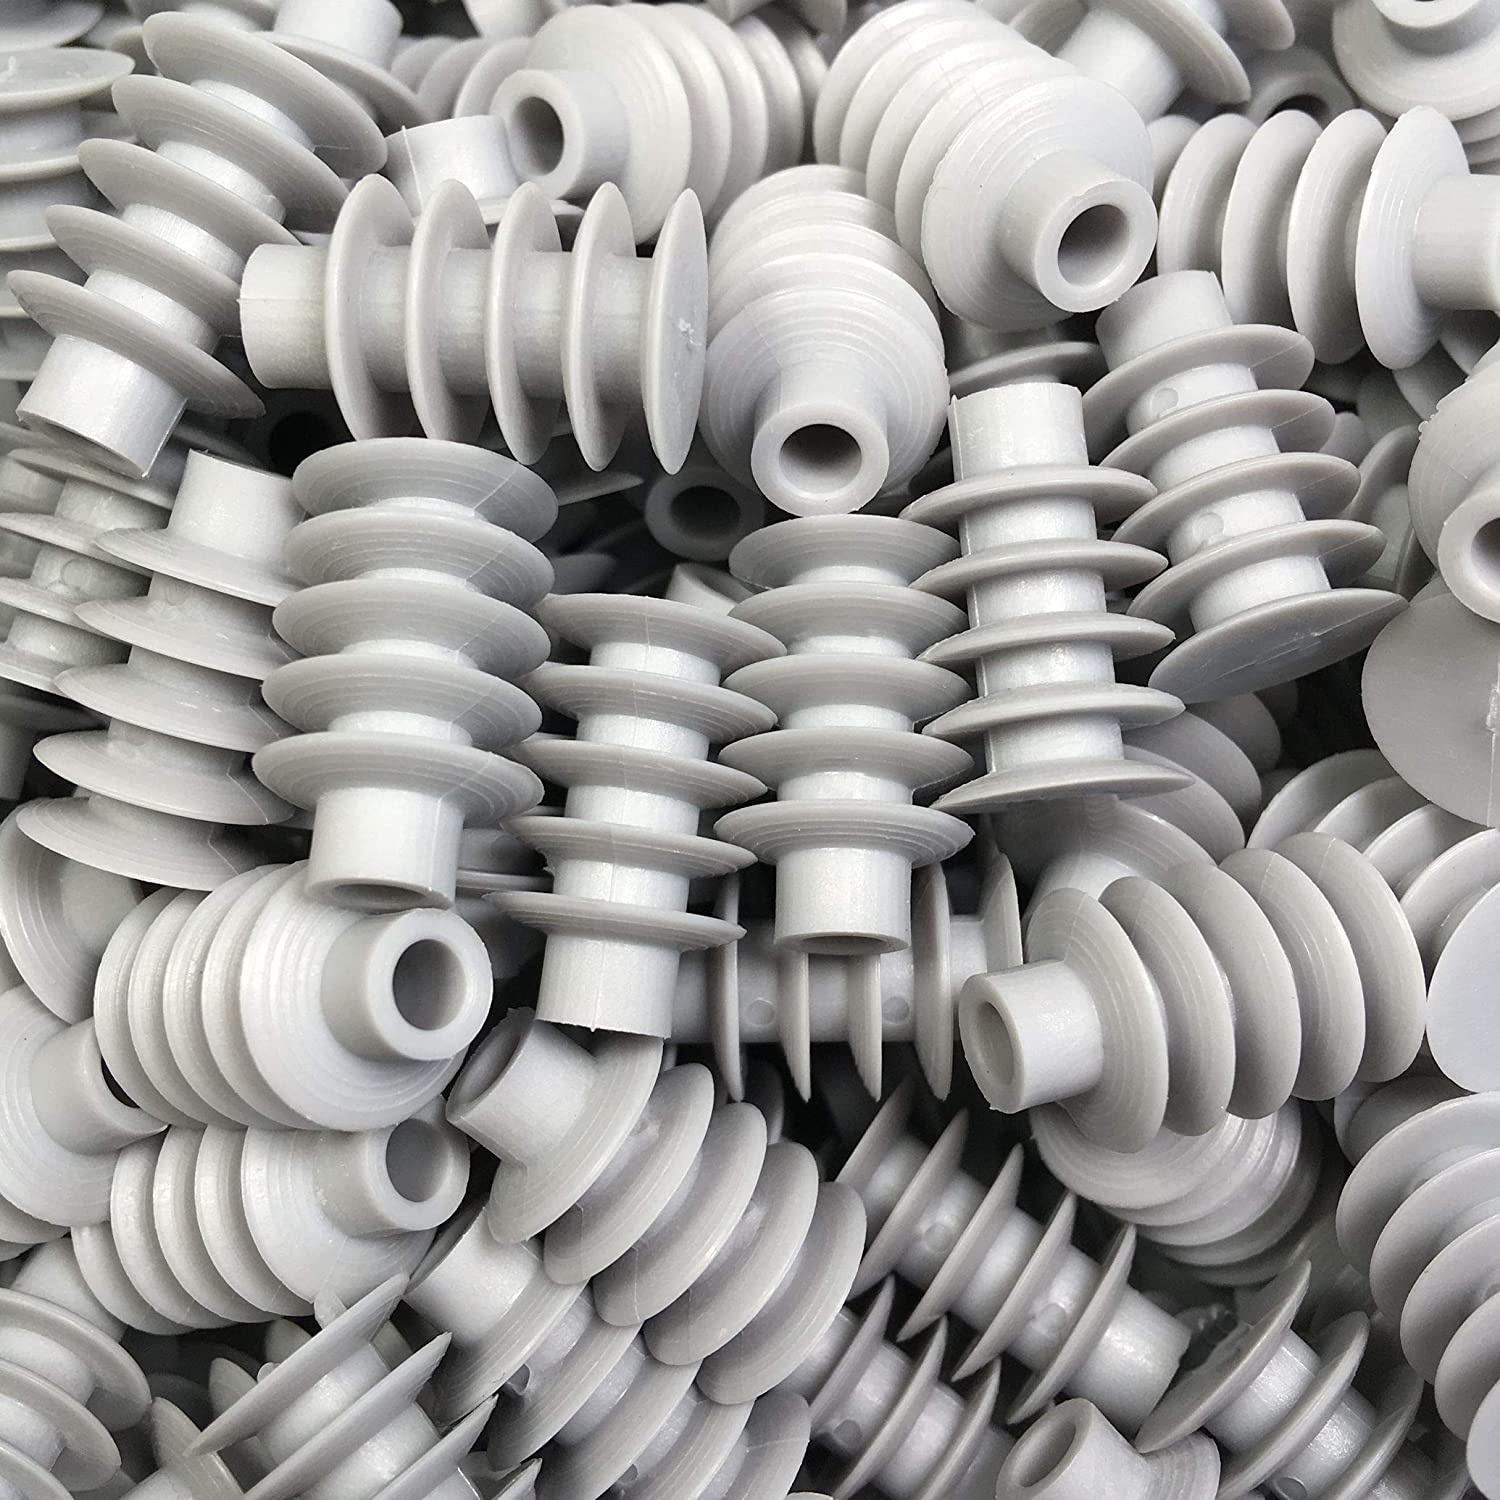 """Item 53830 - Mymicco 300 Count 8"""" 3 Ring Hole Five Translated Clearance SALE Limited time Plugs"""